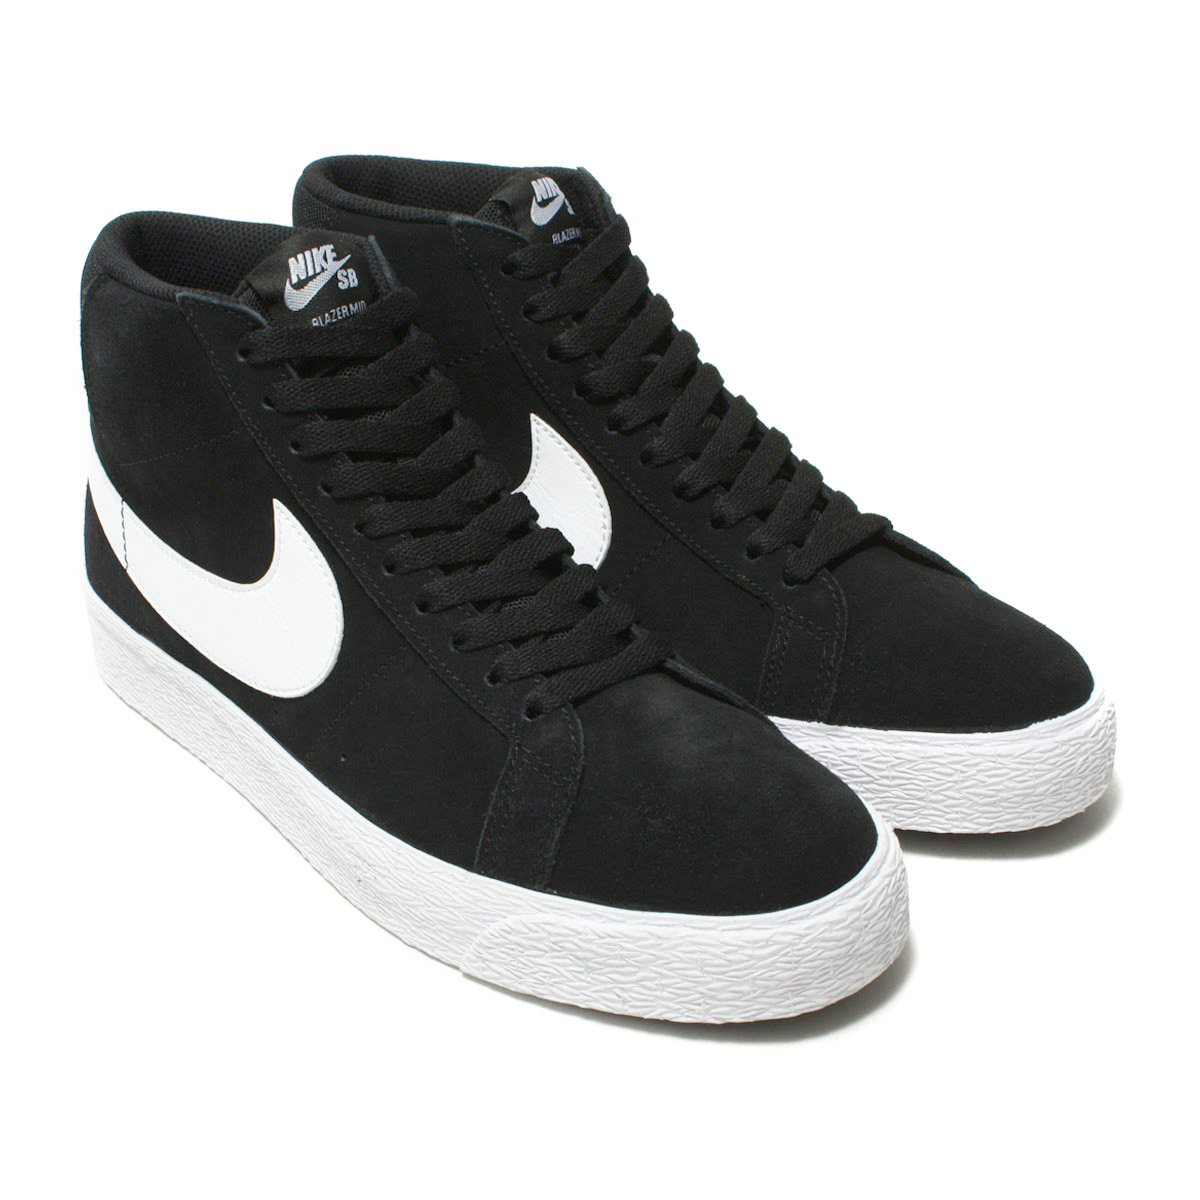 pretty nice 5bd9c 36987 Nike SB ブレーザーズーム MID provides クッショニング with a built-in heel of the high  repulsion at fixed feeling and light weight.